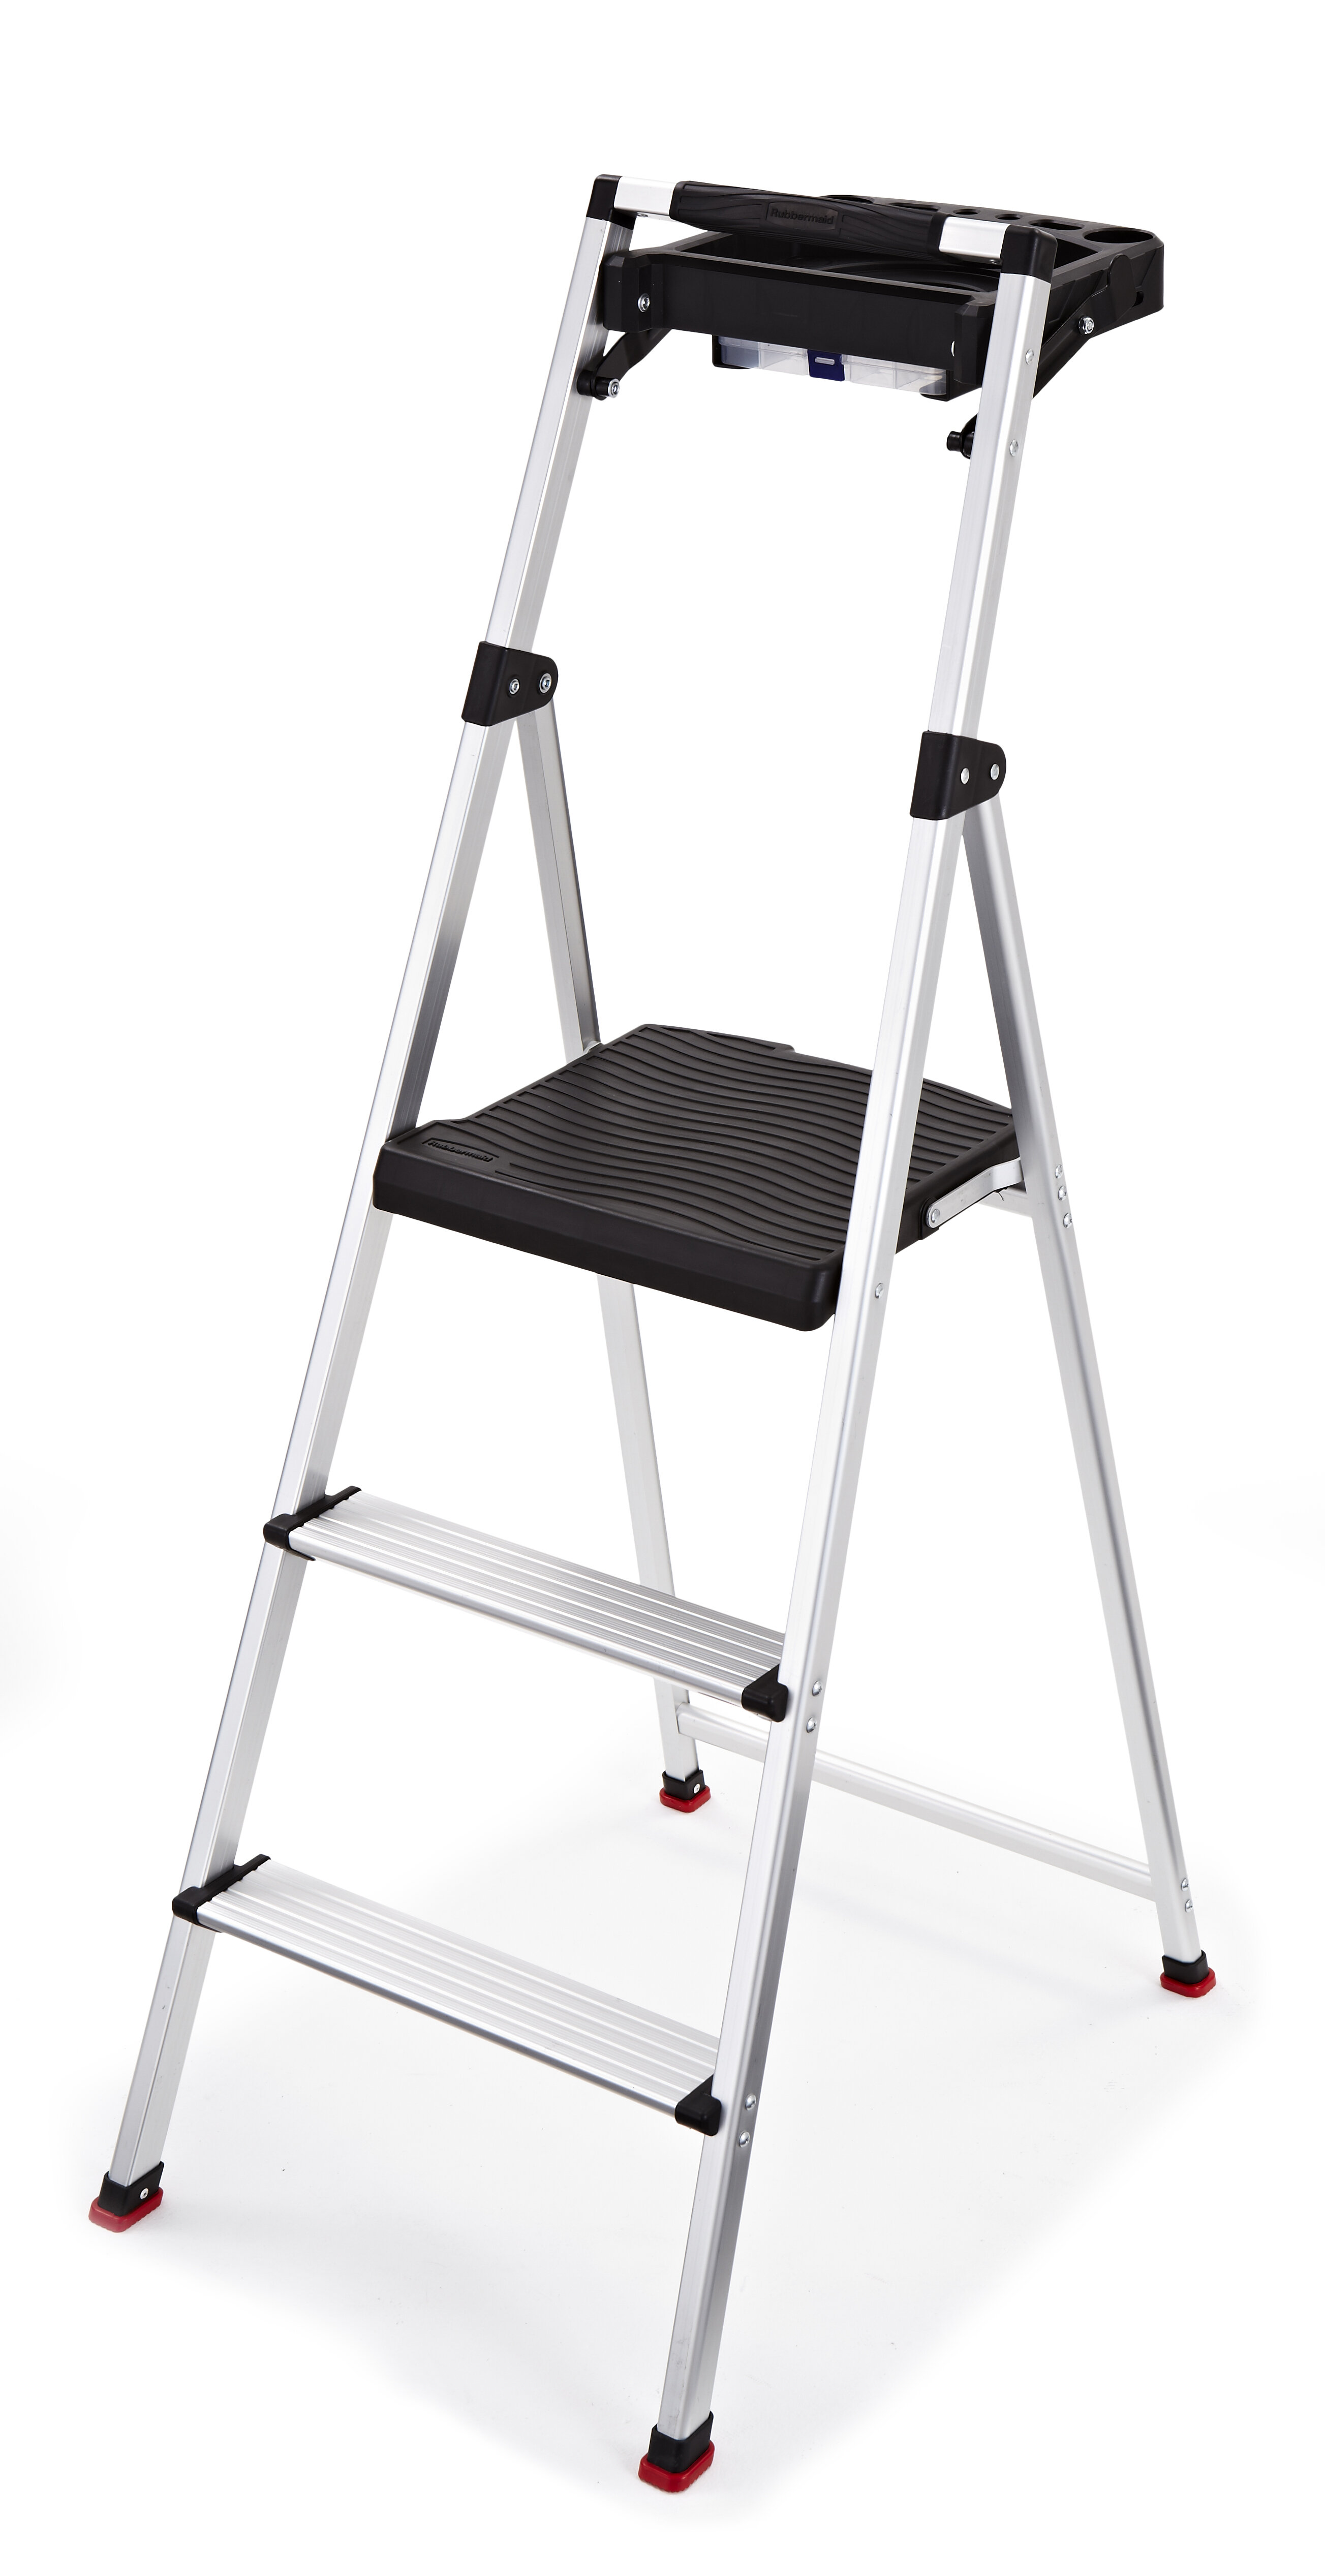 Rubbermaid 3 Step Aluminum Step Stool With 225 Lb Load Capacity